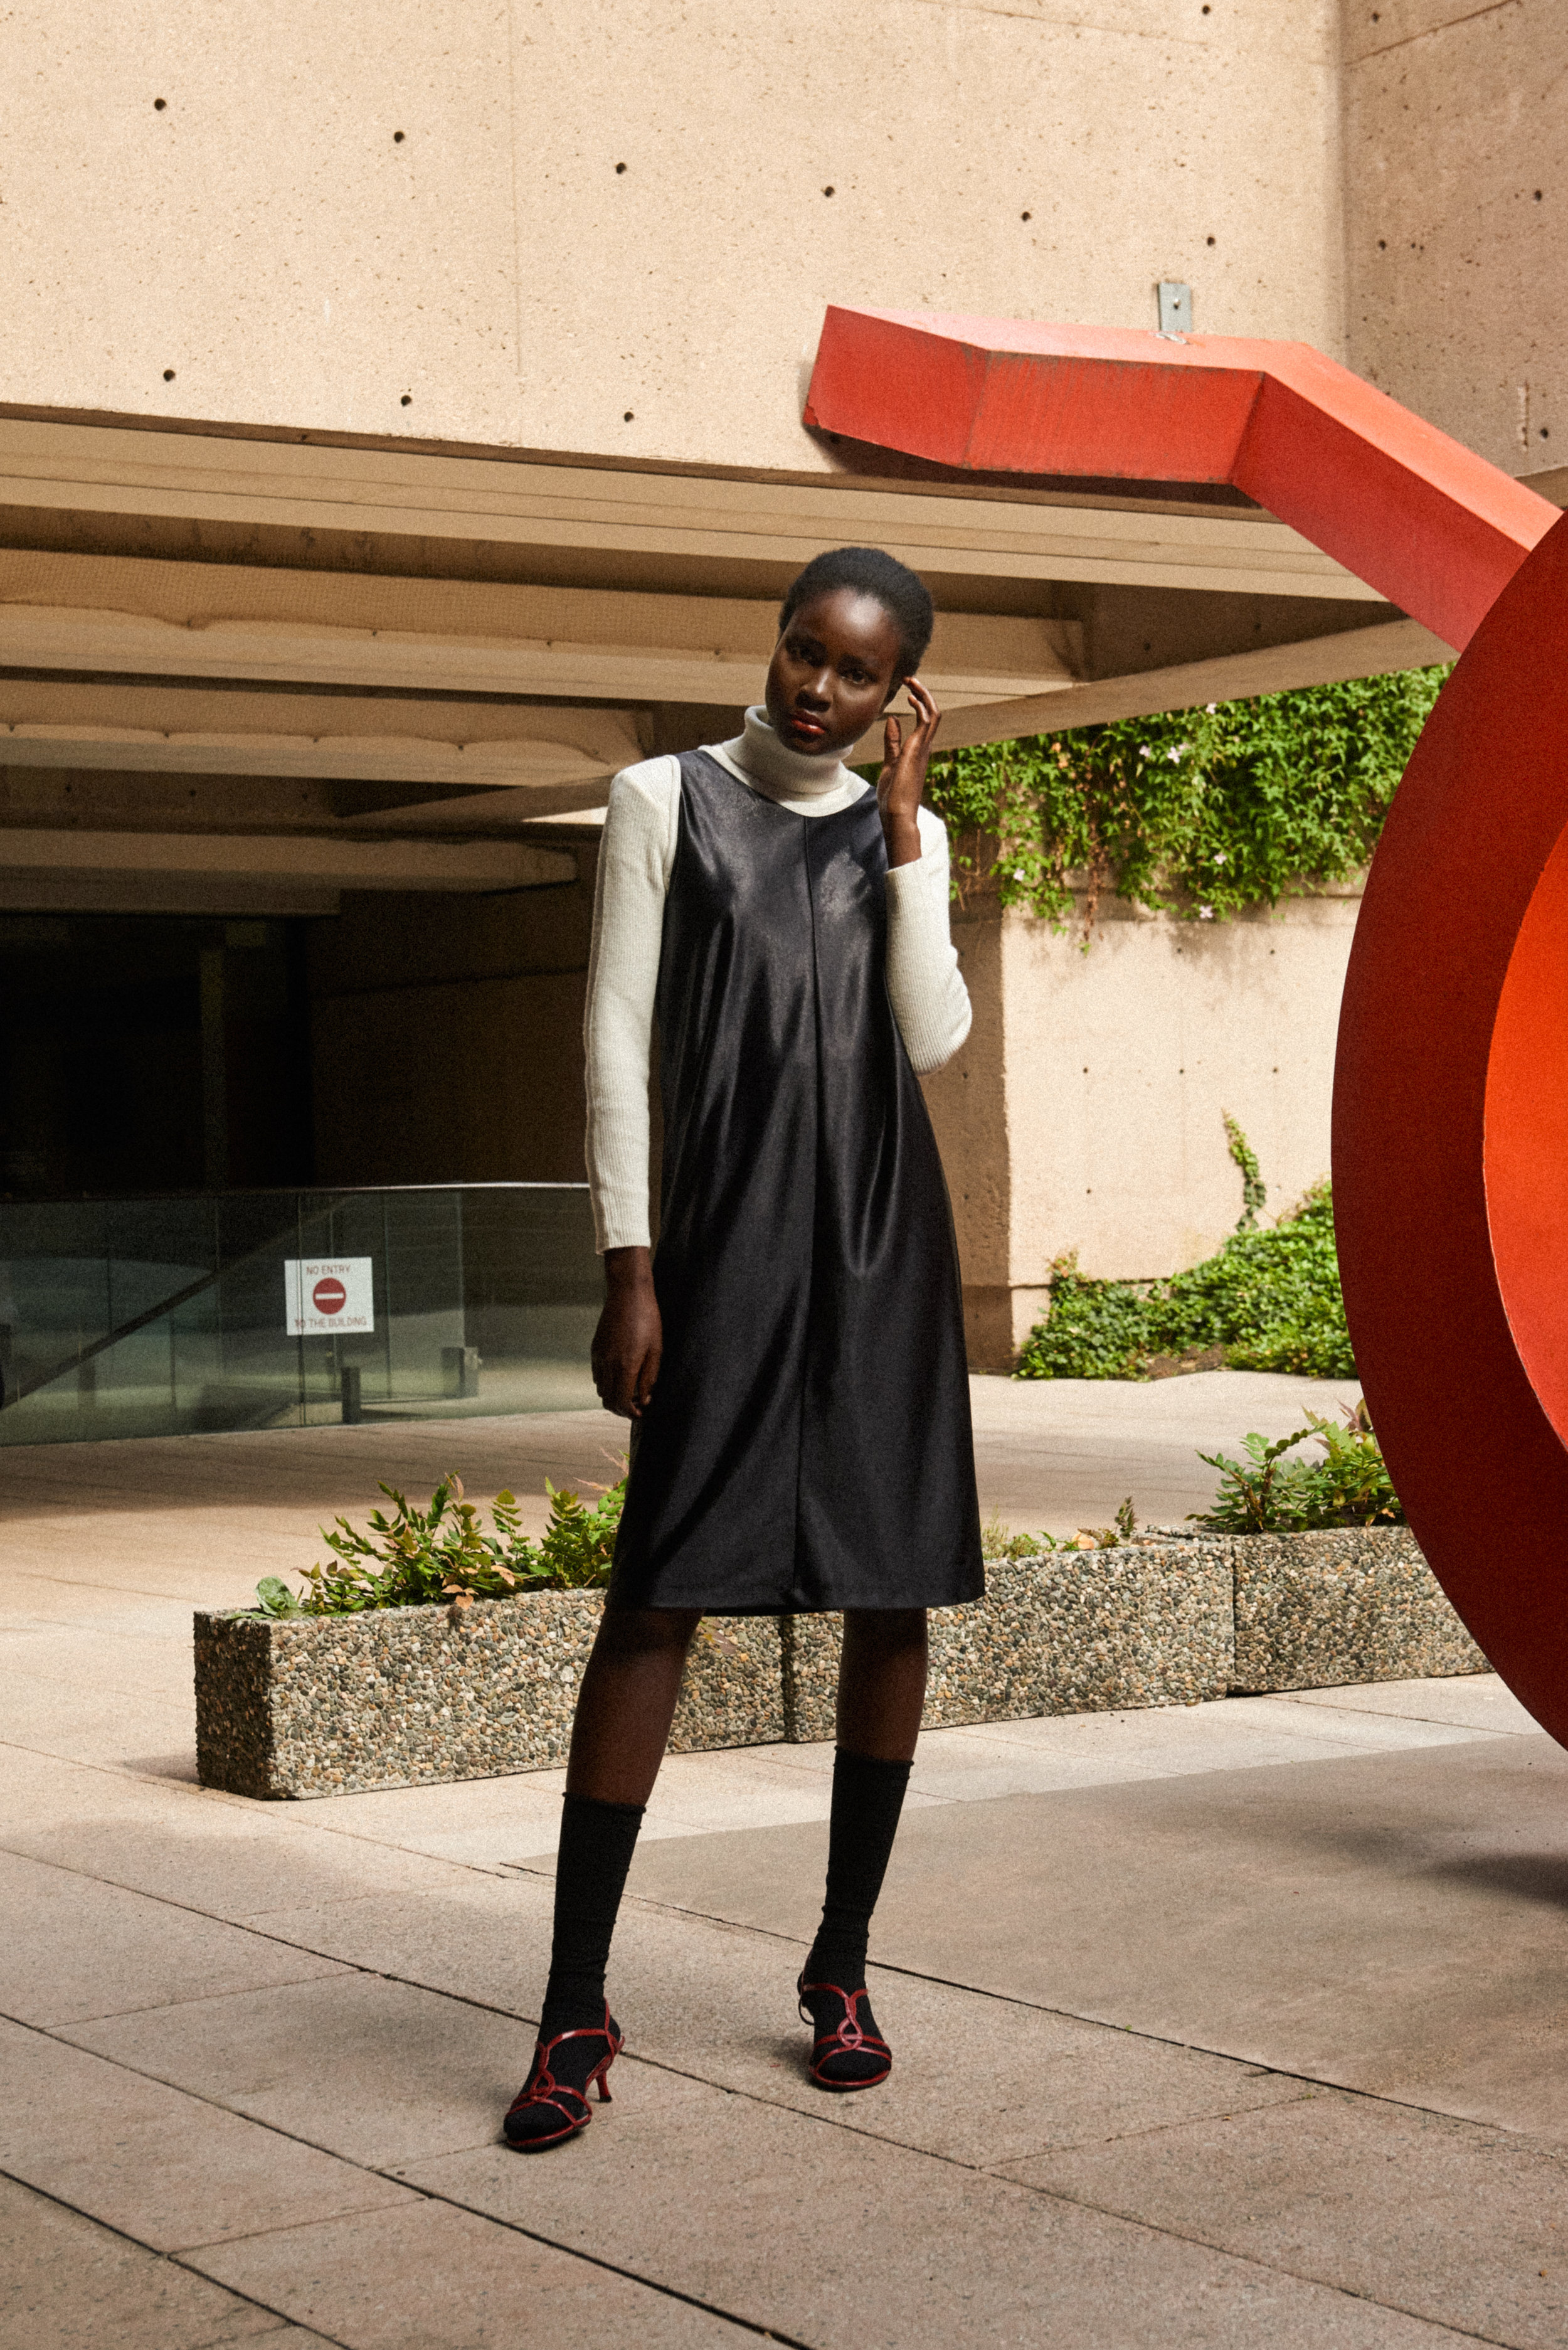 Dress: Mishel Bouilliet Designed and Made in Vancouver, Canada Turtleneck, Footwear: Thrifted